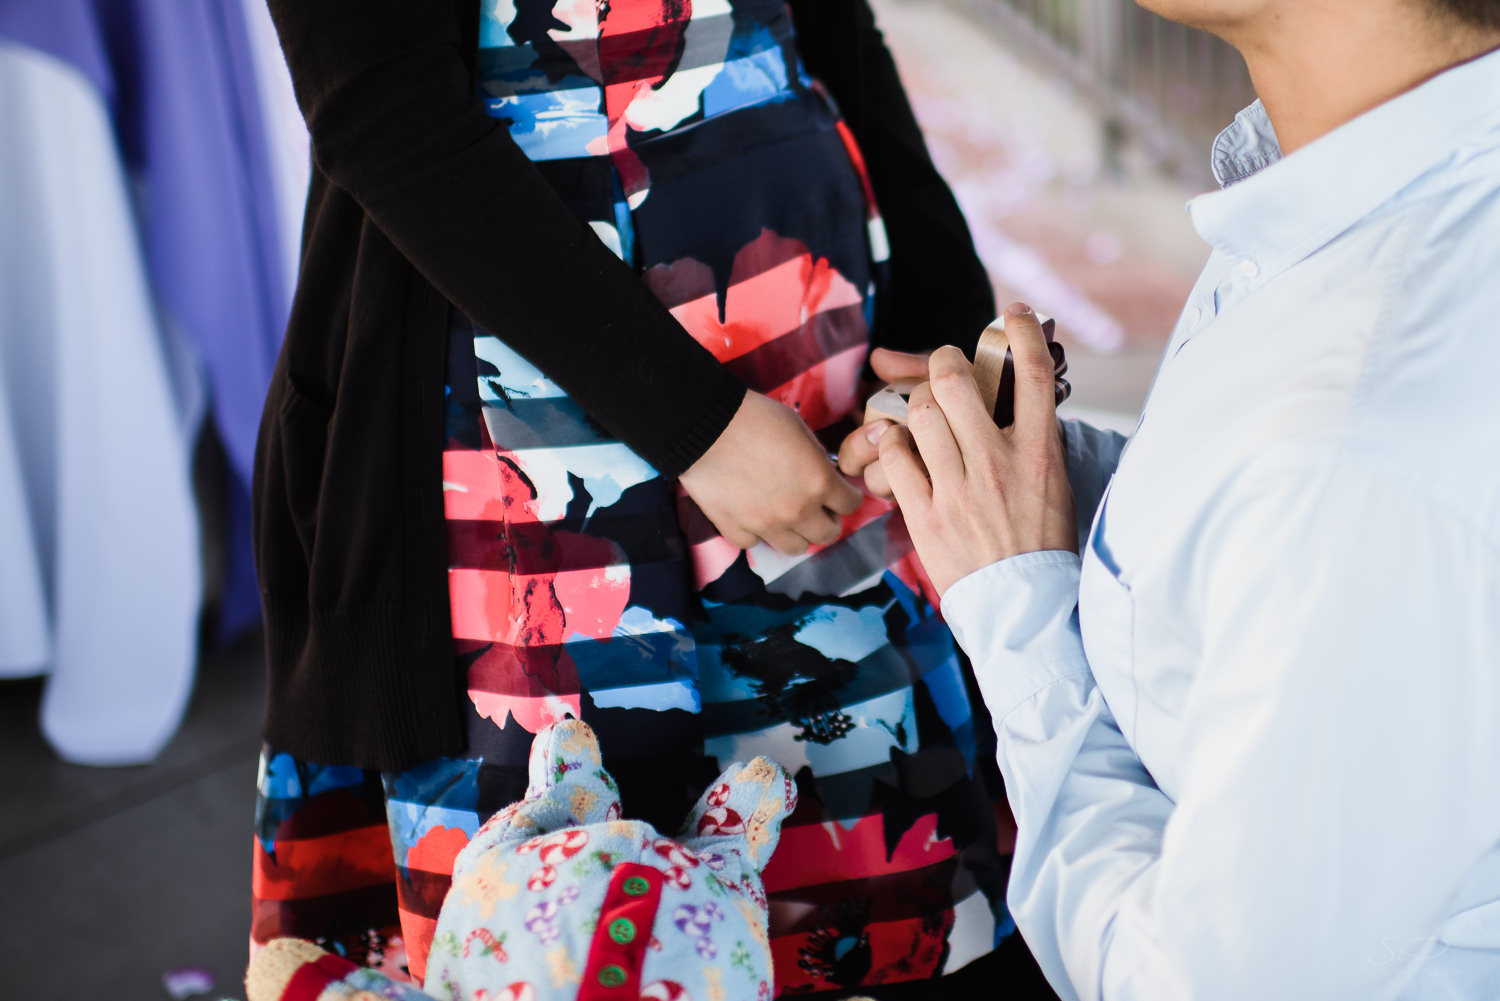 Will you marry me? Cliffside proposal & engagement in Dana Point | Stanley Wu Photography Portrait & Wedding Photographer | Los Angeles, Orange County, Southern California